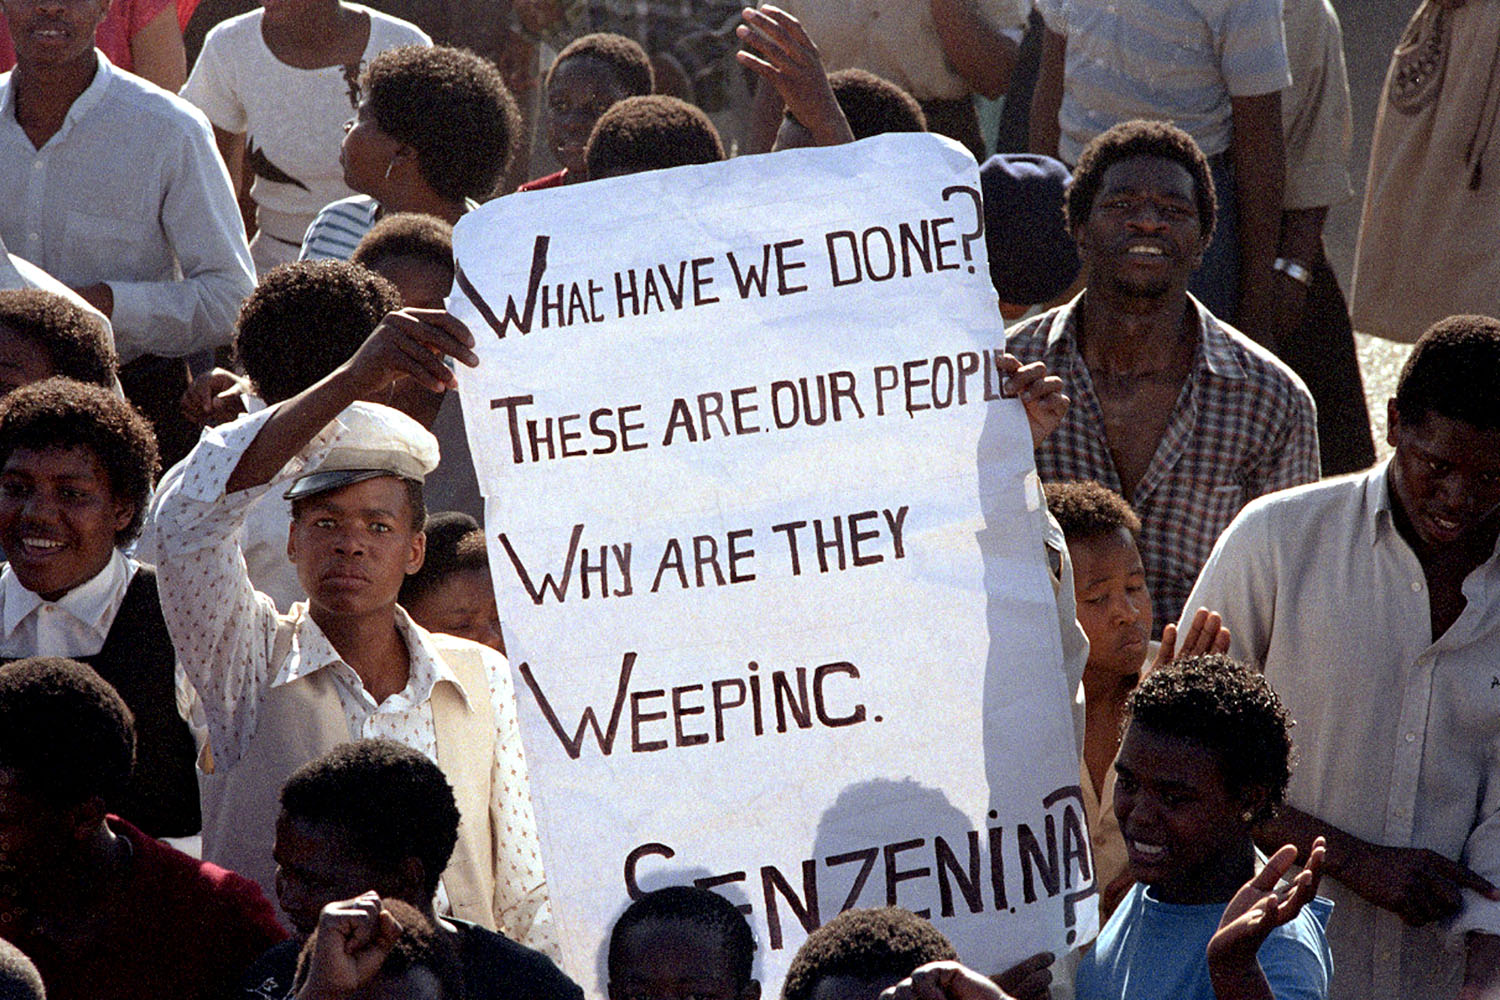 As their leader Nelson Mandela was sent to prison for life for his aspirations of a non-racist, non-sexist democratic South Africa, it was common that hundreds of thousands of black South Africans would congregate in a township somewhere in the country each weekend to protest apartheid and to mourn the deaths of loved ones killed protesting.